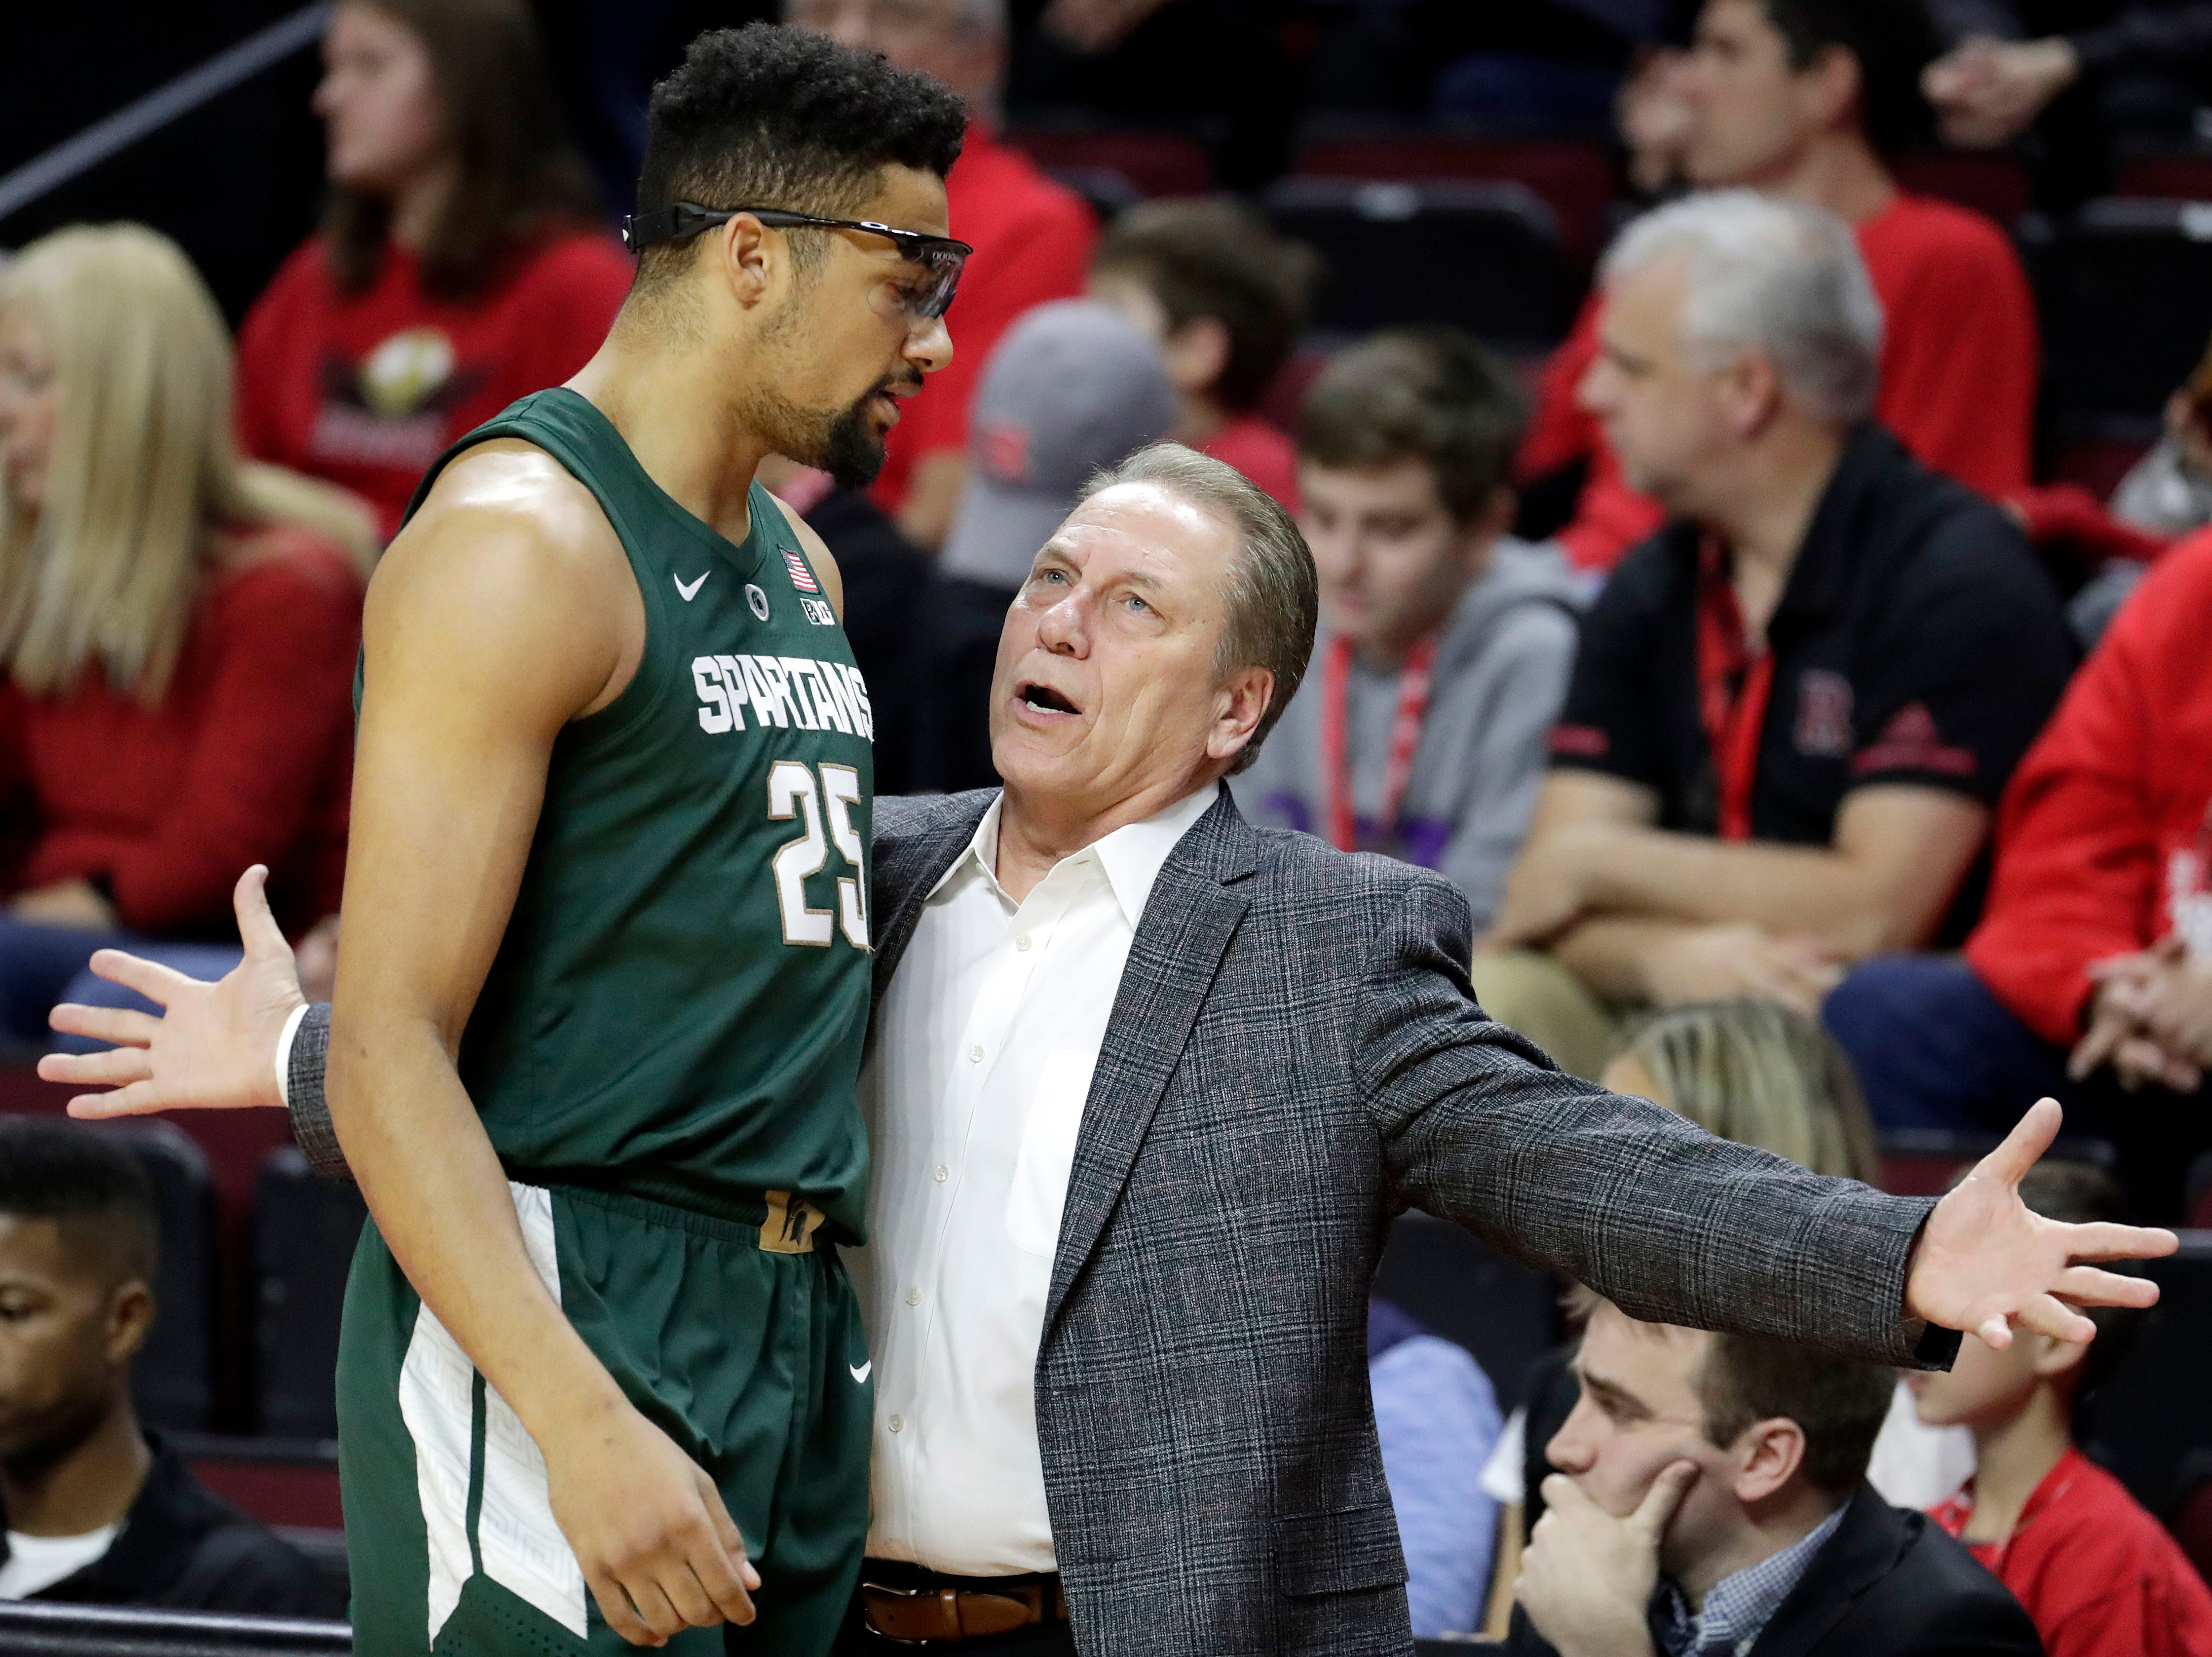 Michigan State head coach Tom Izzo, right, talks to forward Kenny Goins (25) during the first half of an NCAA college basketball game against Rutgers, Friday, Nov. 30, 2018, in Piscataway, N.J. (AP Photo/Julio Cortez)